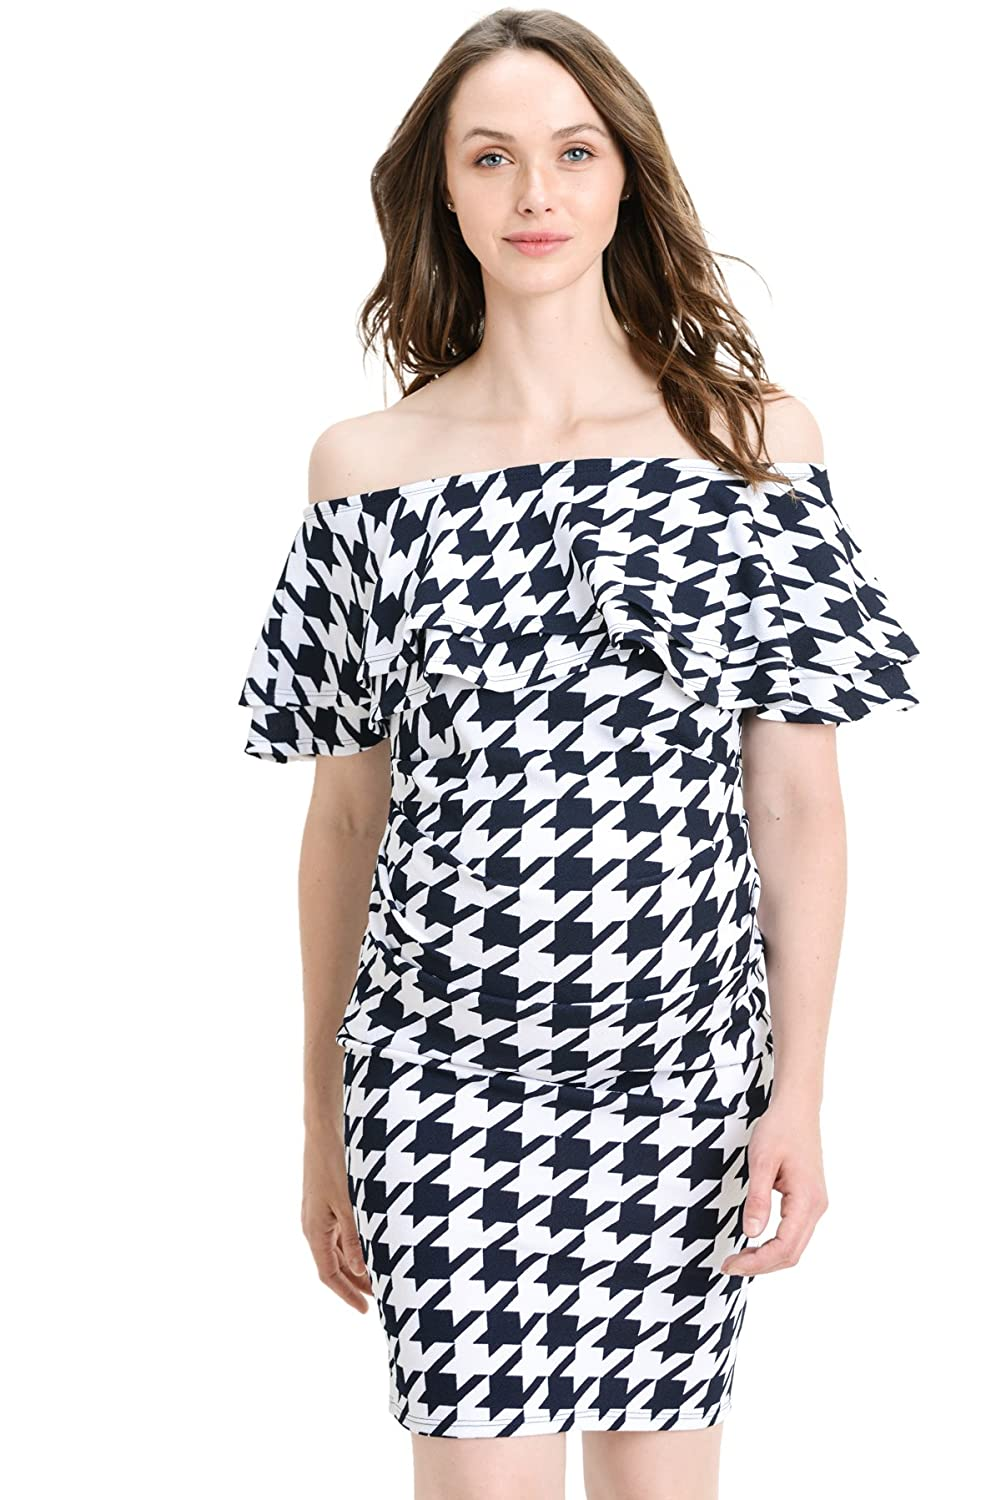 LaClef DRESS レディース B07FV18B87 X-Large|D.navy Houndstooth D.navy Houndstooth X-Large